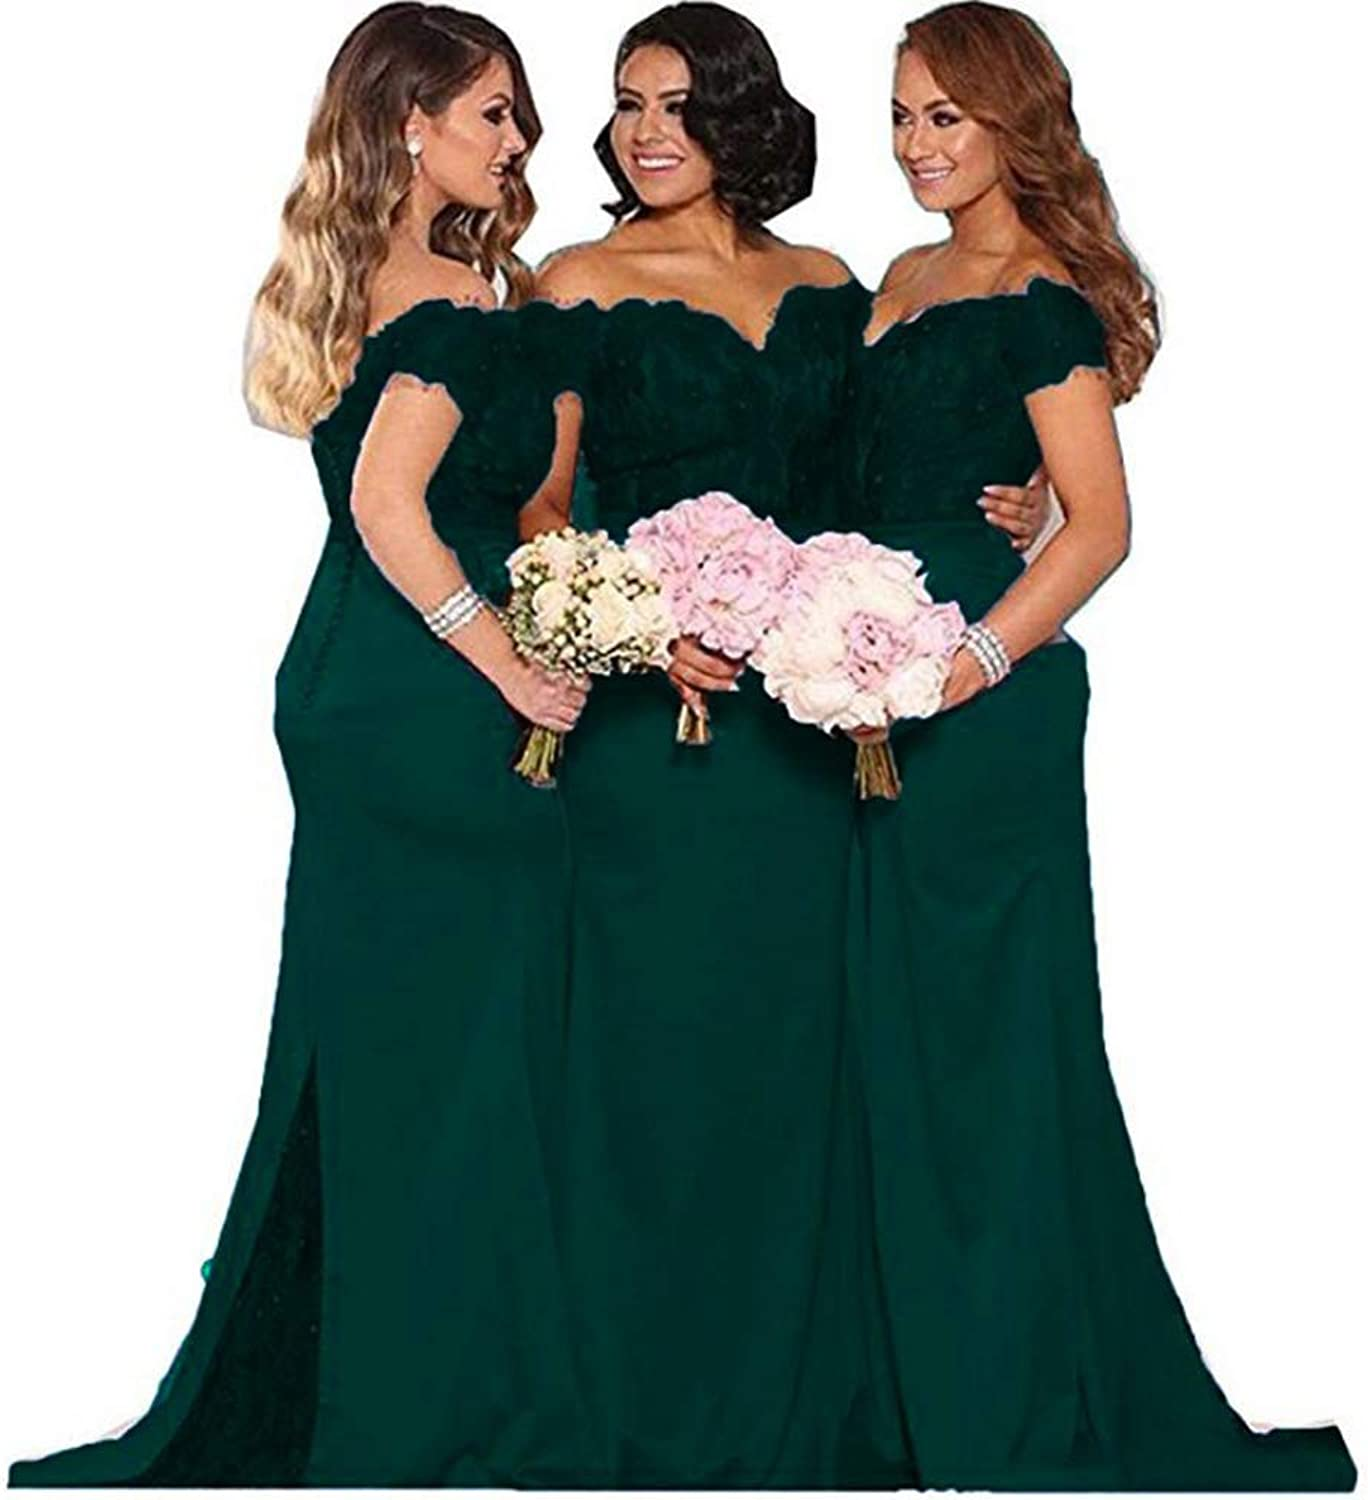 Fanciest Women's Lace Bridesmaid Dresses Long 2018 Formal Mermaid Maid of Honor Gowns